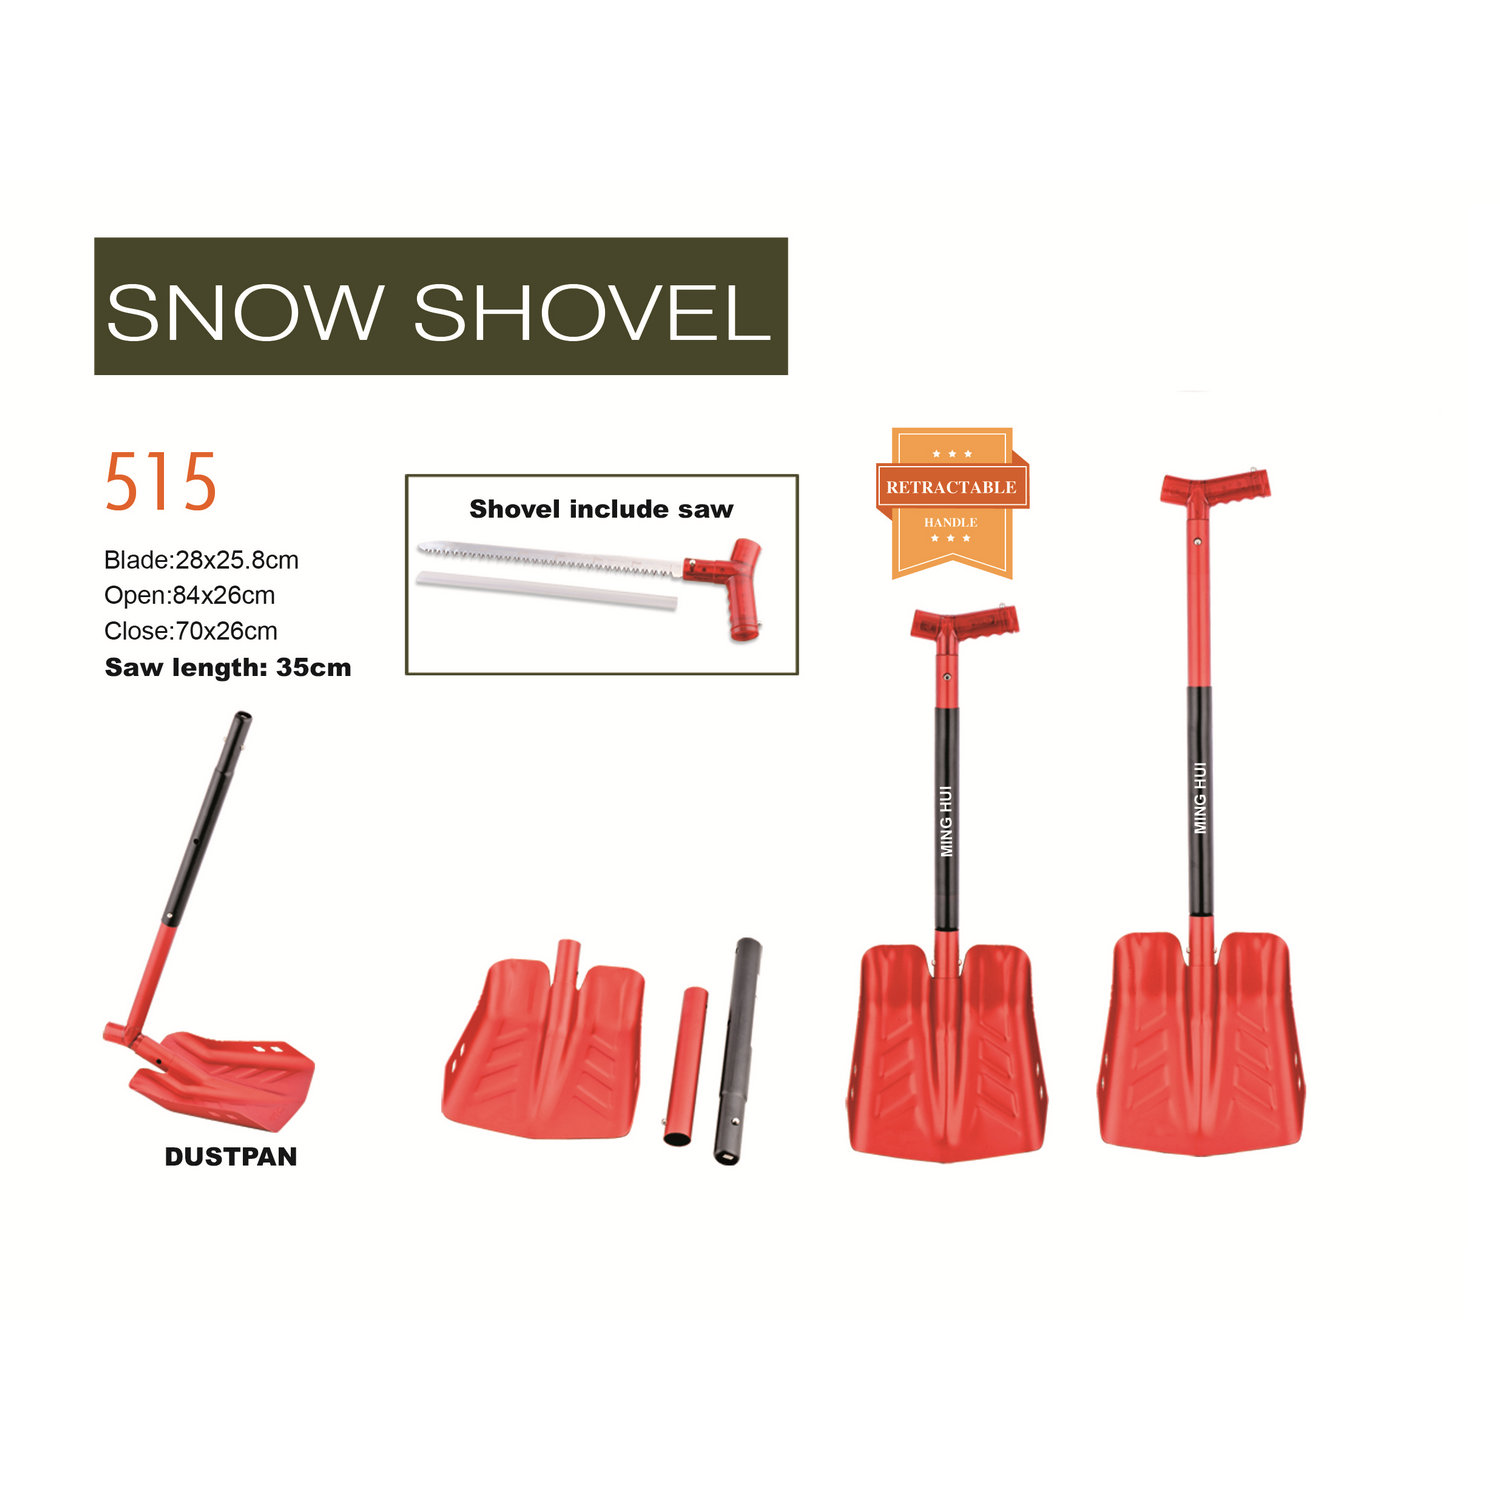 Snow shovel 515